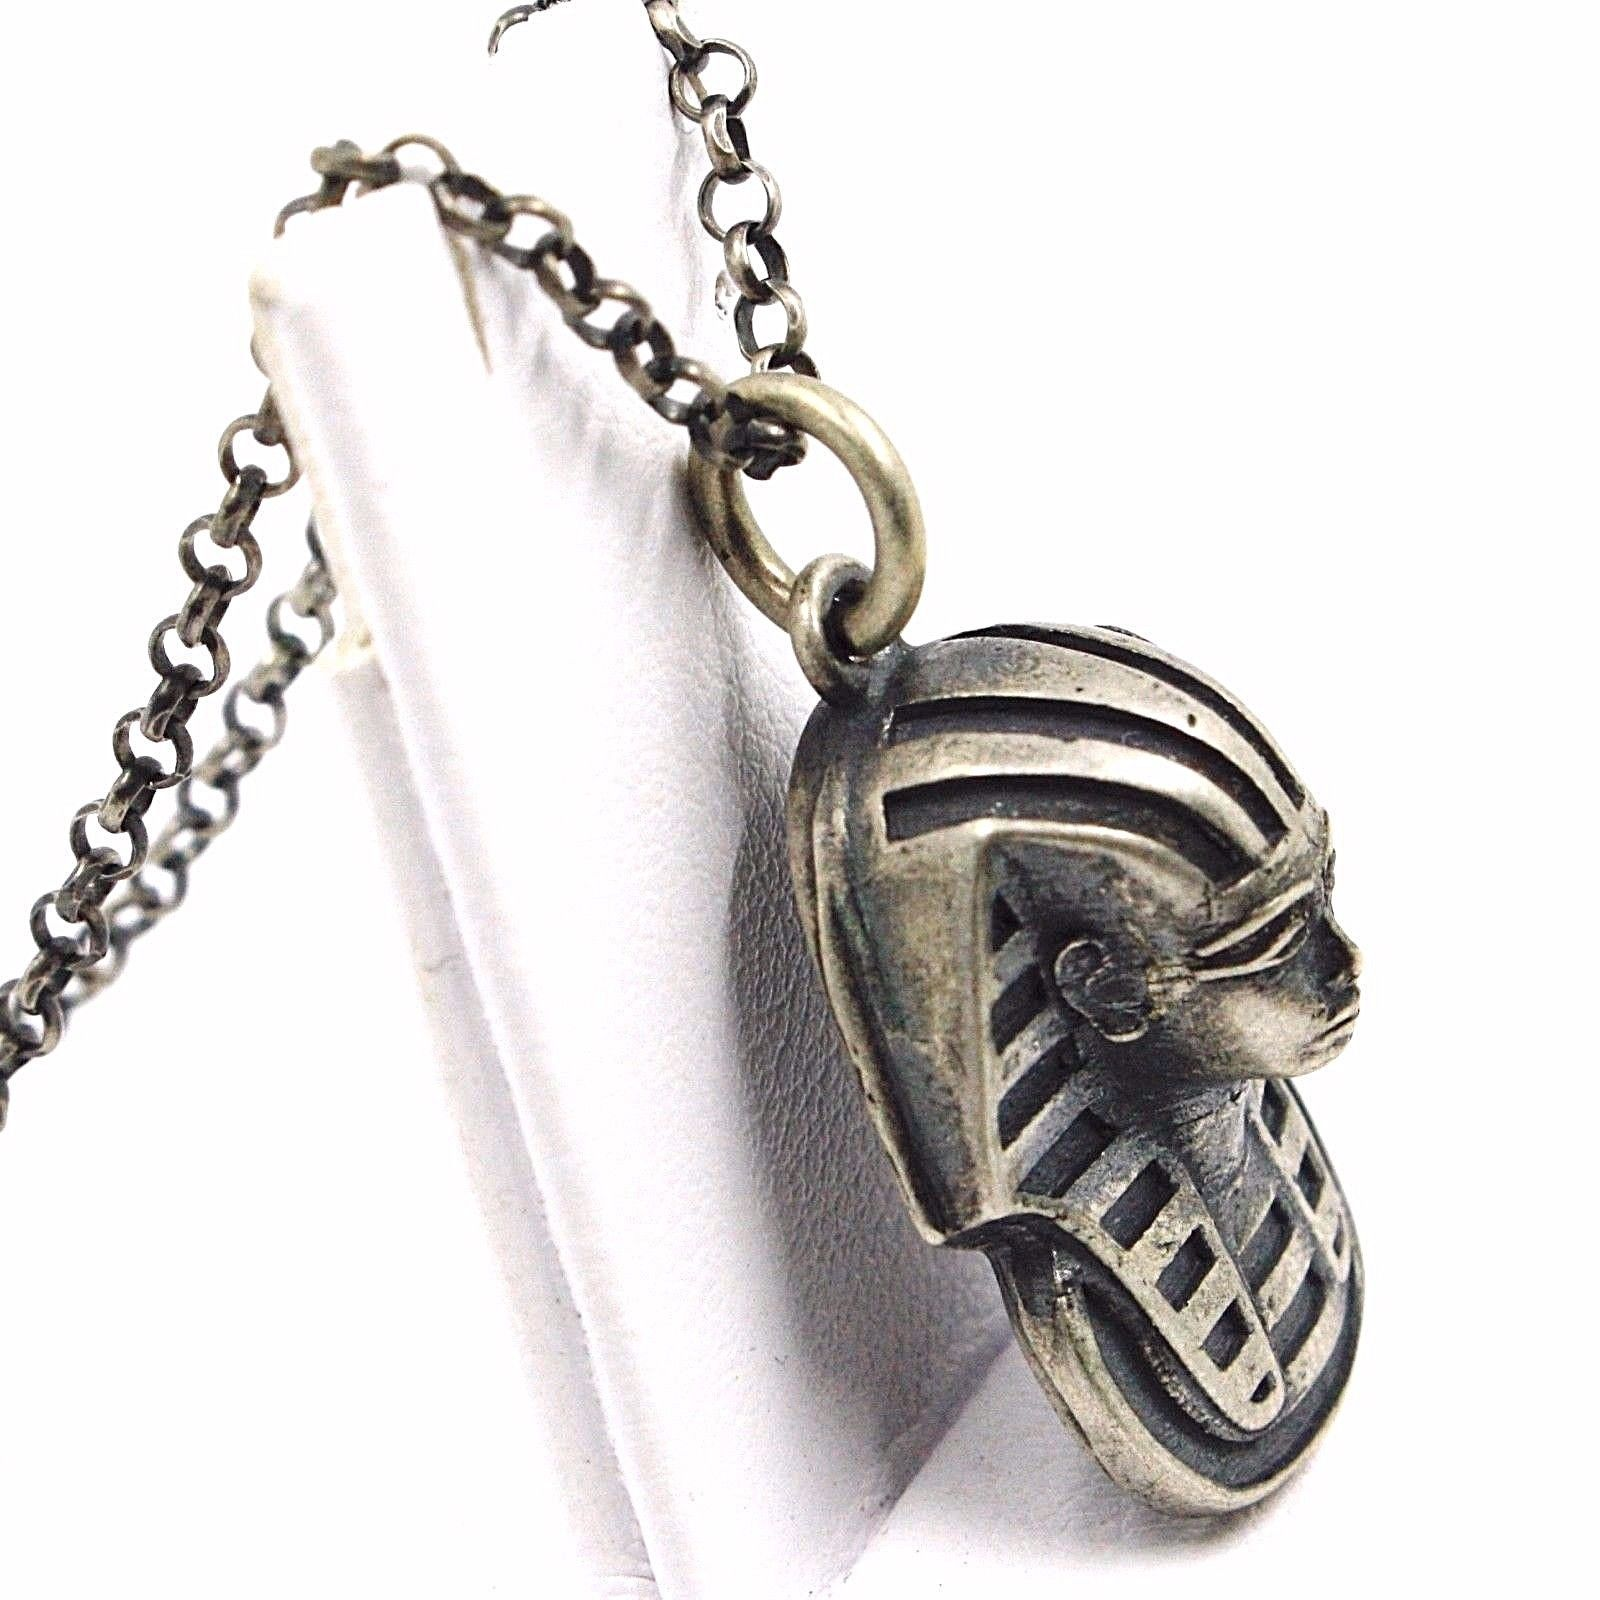 PENDANT NECKLACE, 925 SILVER, BURNISHED SATIN, HEAD PHARAOH, CHAIN ROLO'